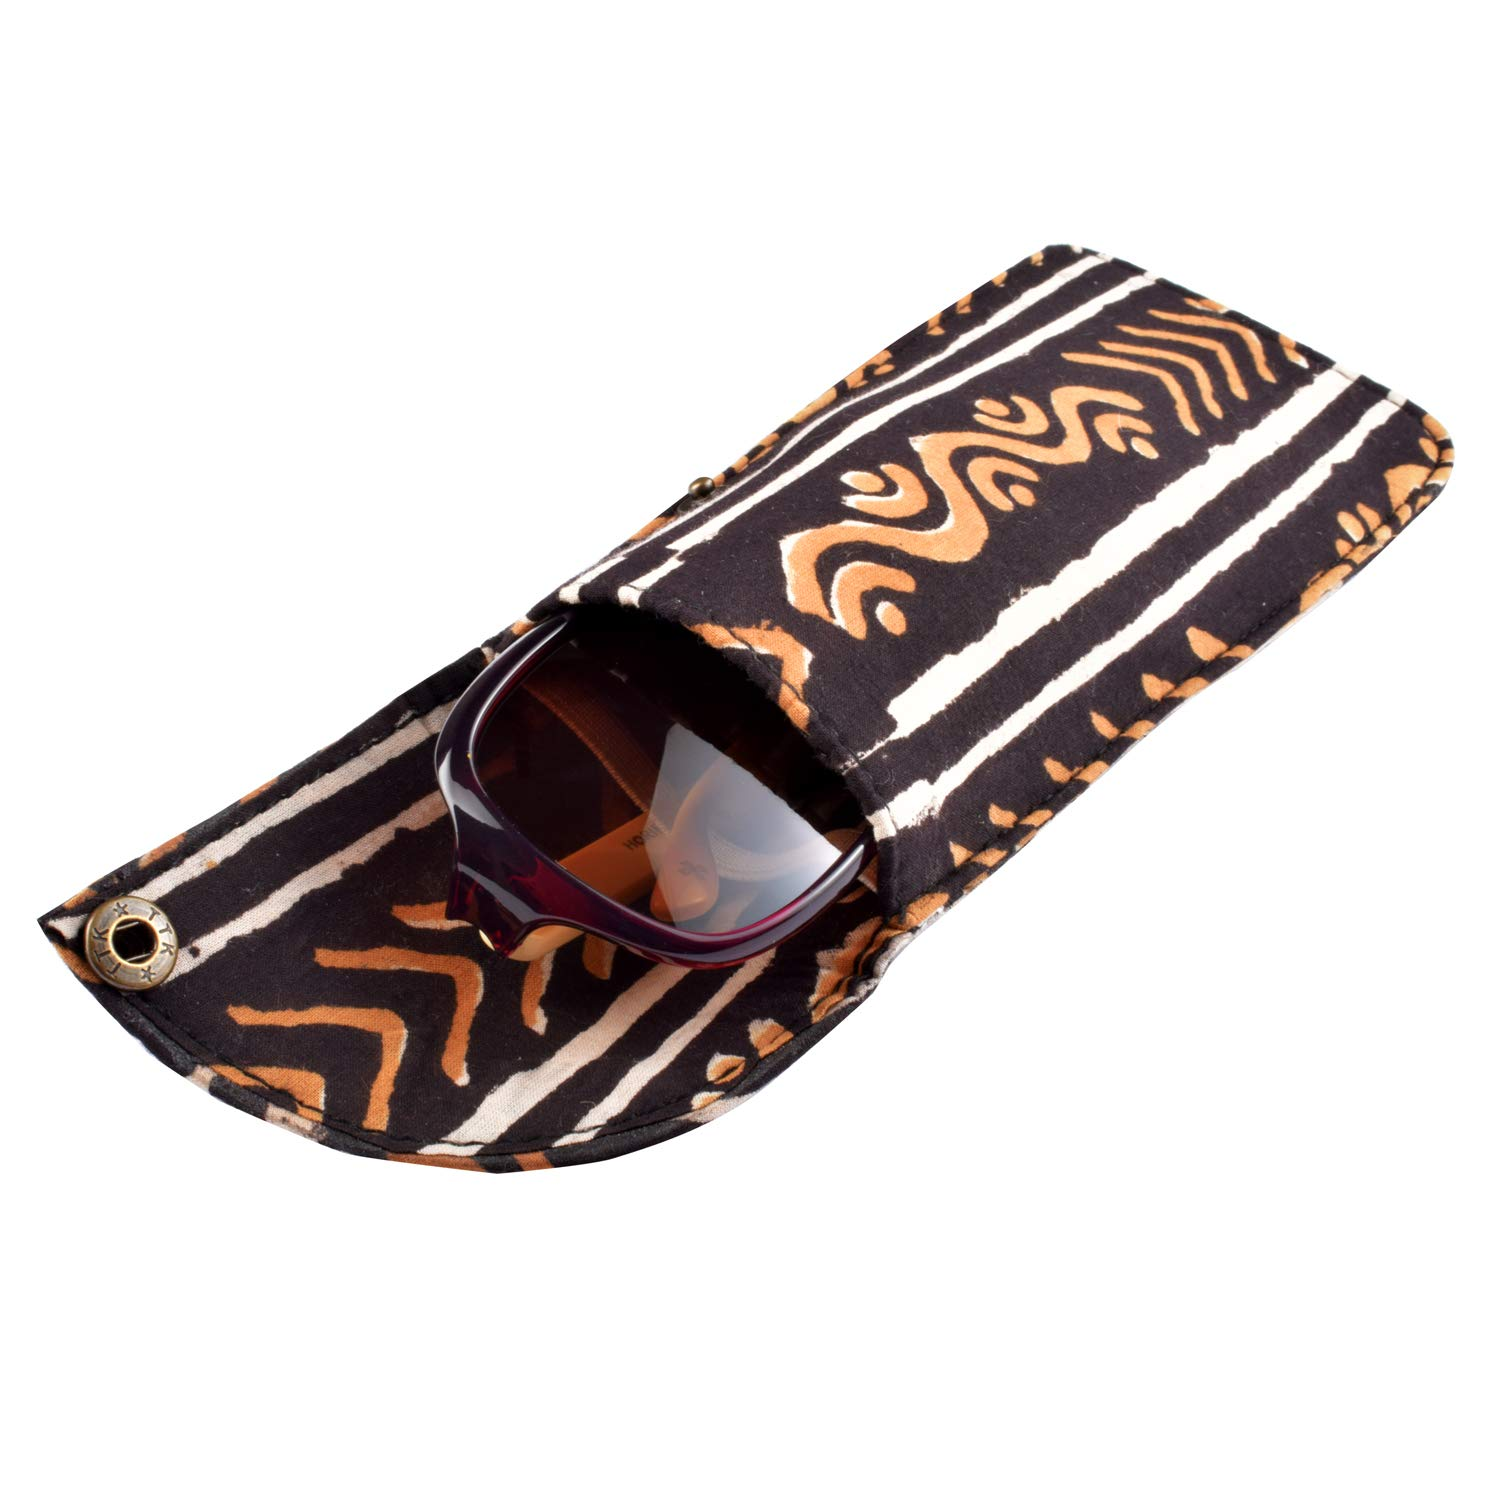 Ethniche Designs Handprinted cotton Pouch//Case Cover for SunGlass//Spectacles